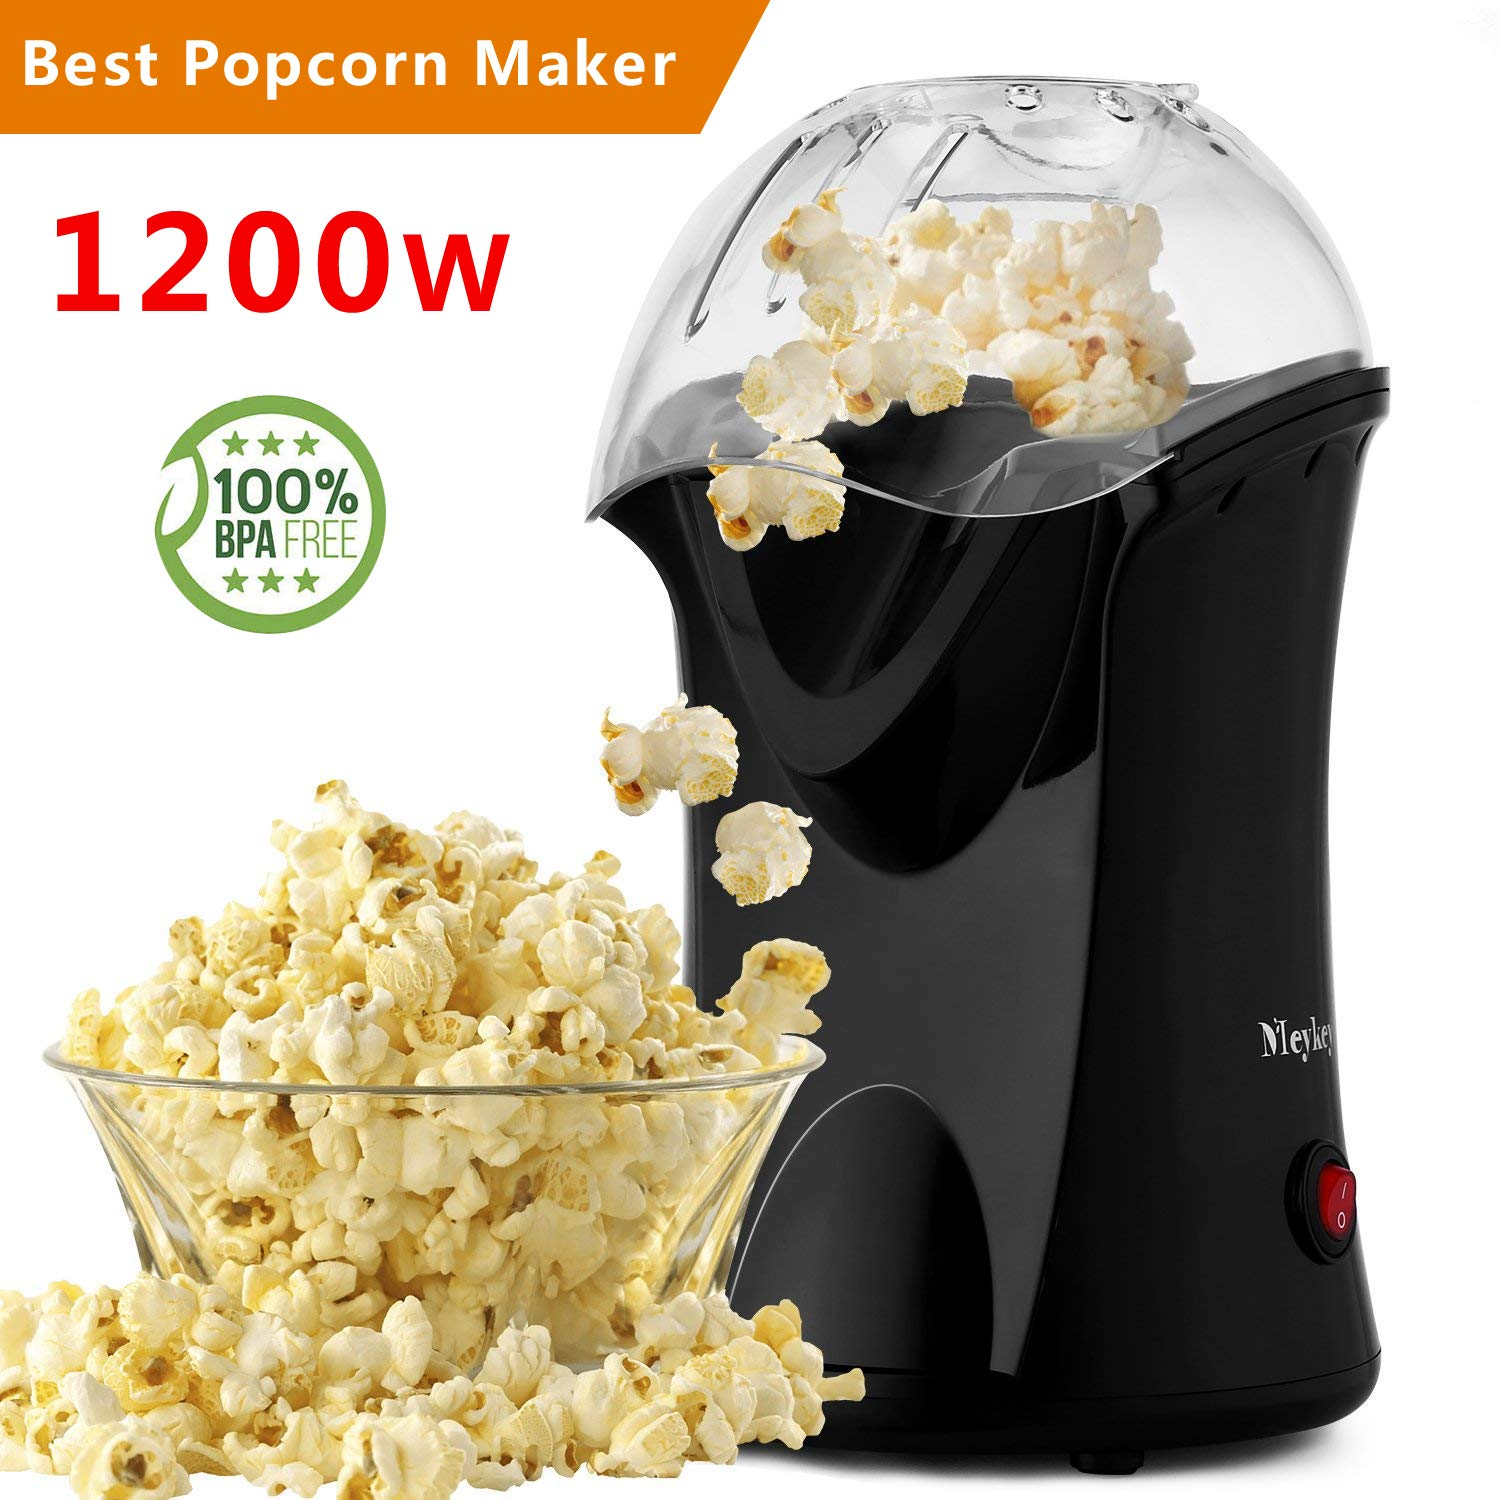 Popcorn Maker, Popcorn Machine, 1200W Hot Air Popcorn Popper Healthy Machine No Oil Needed ( )